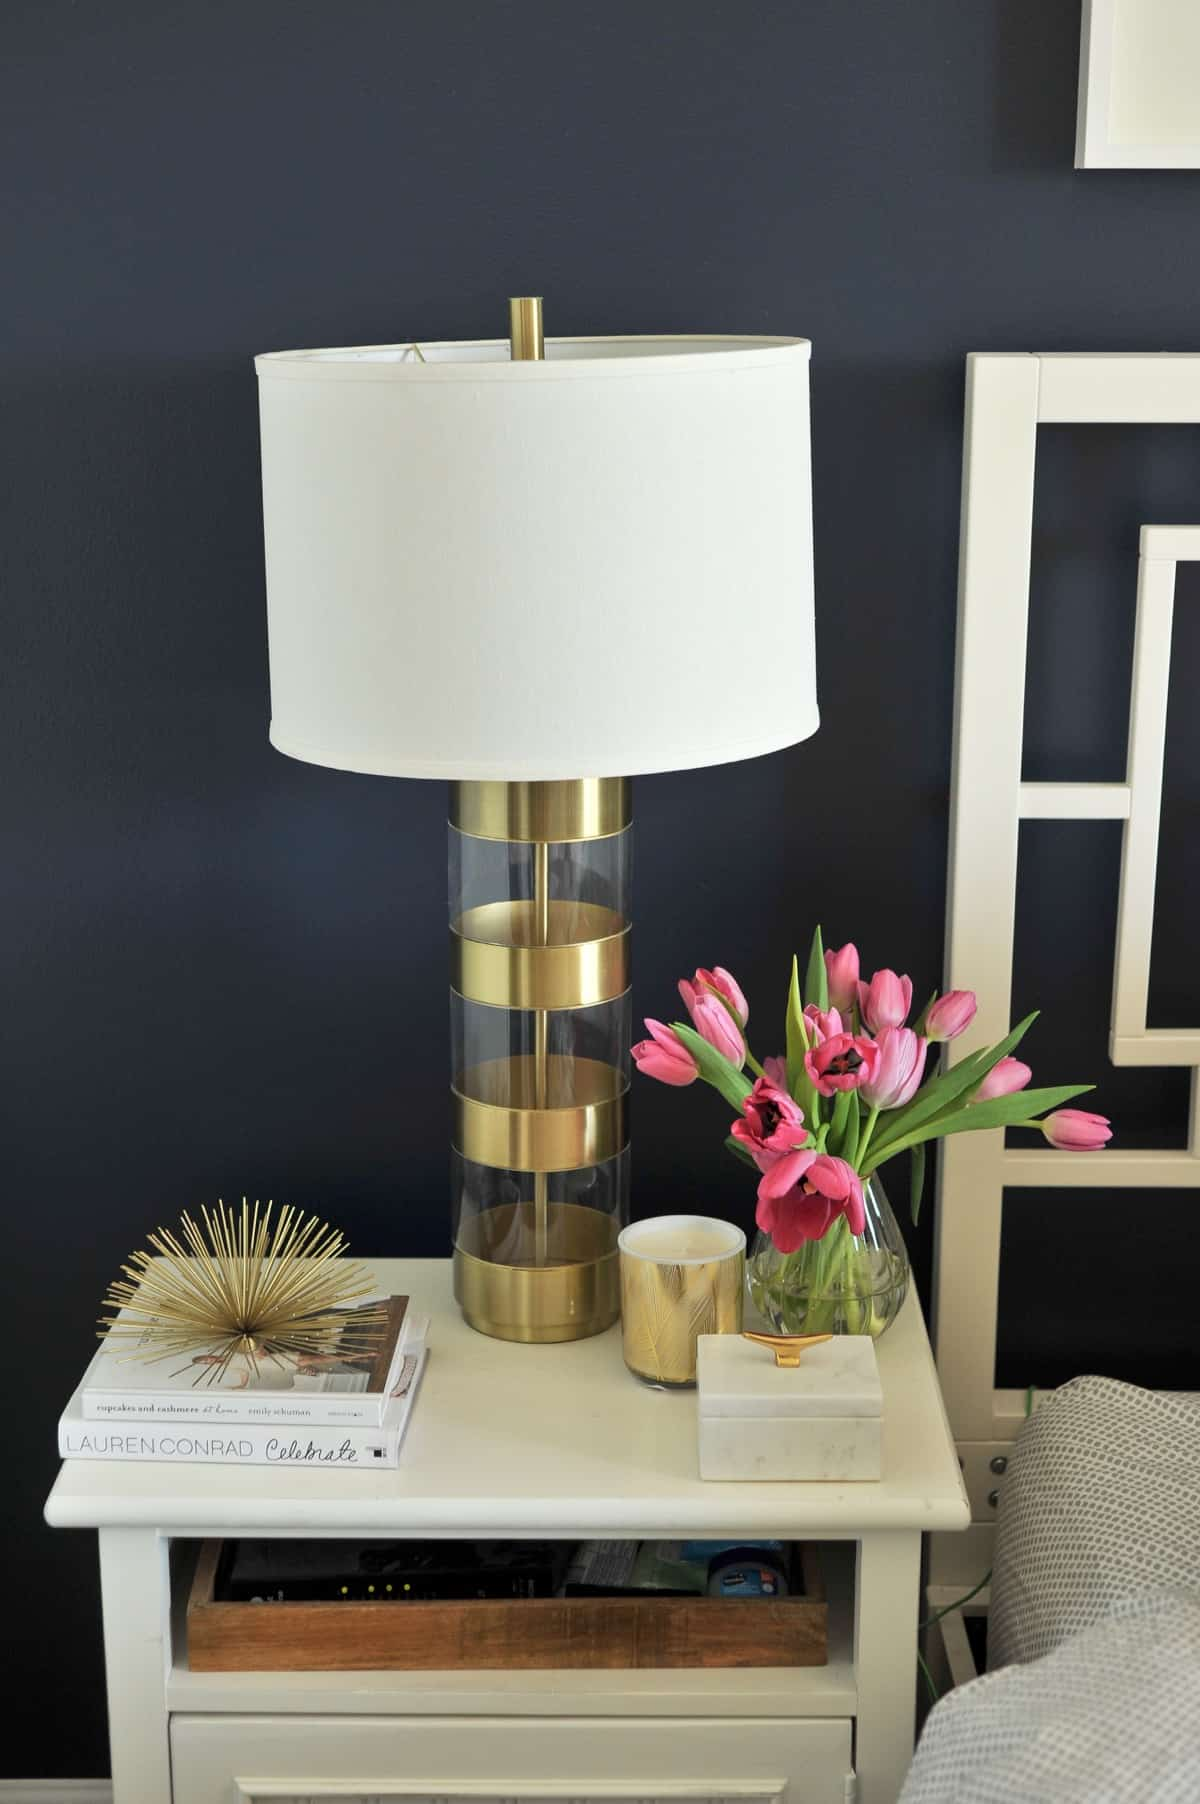 Kohl's spring updates to the home with Lauren Conrad items - My Style Vita - @mystylevita - 19